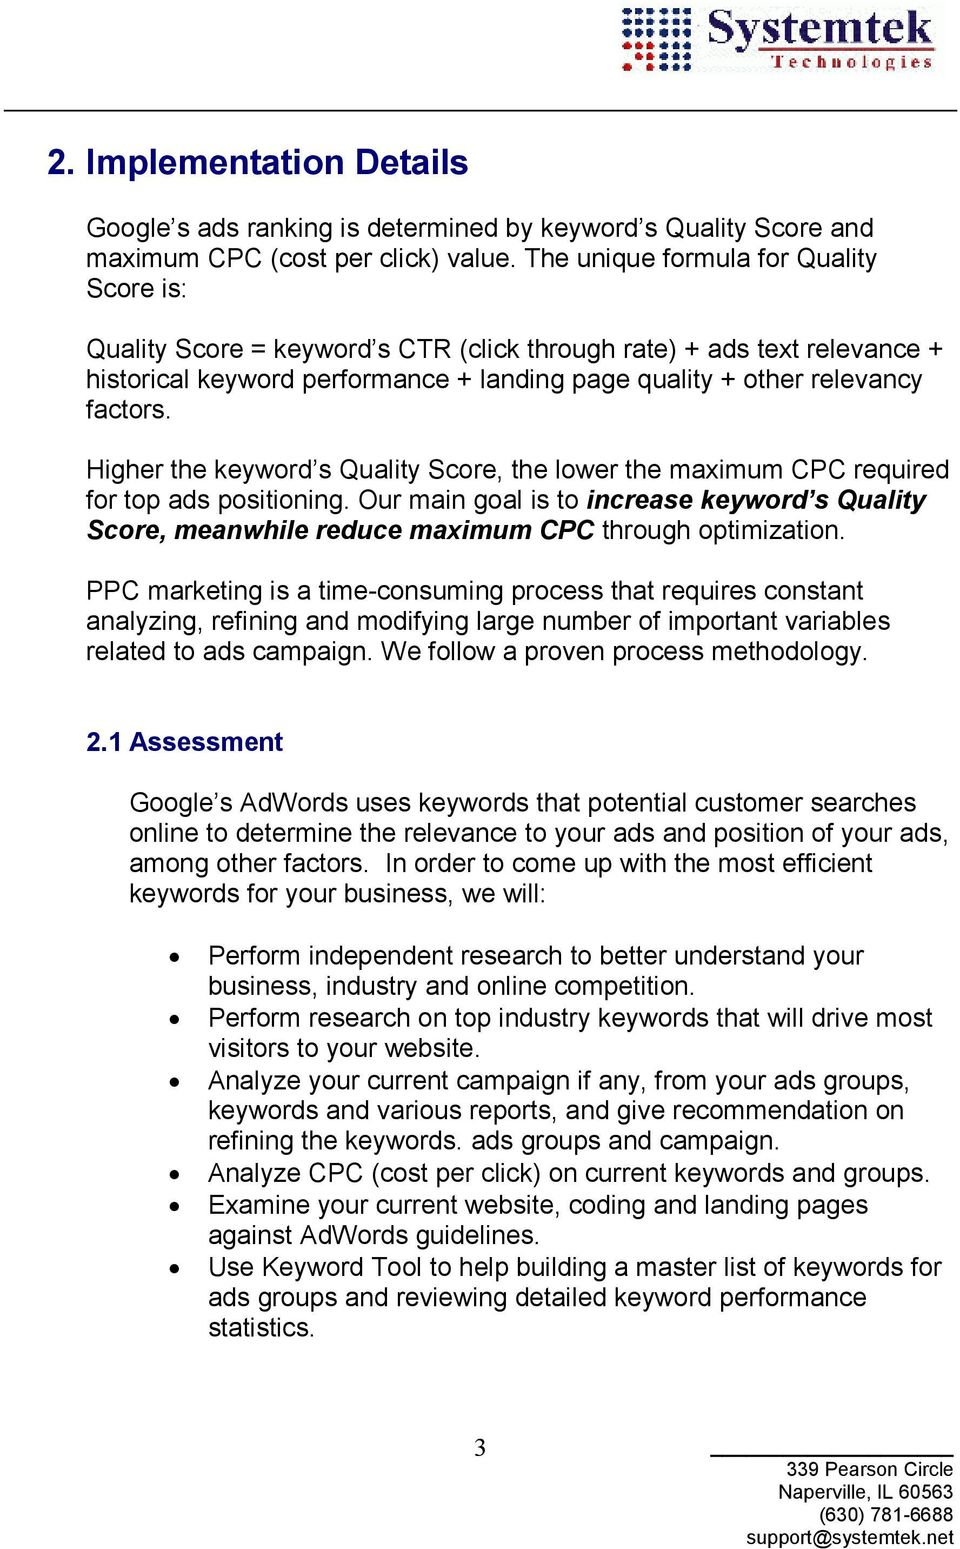 Higher the keyword s Quality Score, the lower the maximum CPC required for top ads positioning. Our main goal is to increase keyword s Quality Score, meanwhile reduce maximum CPC through optimization.